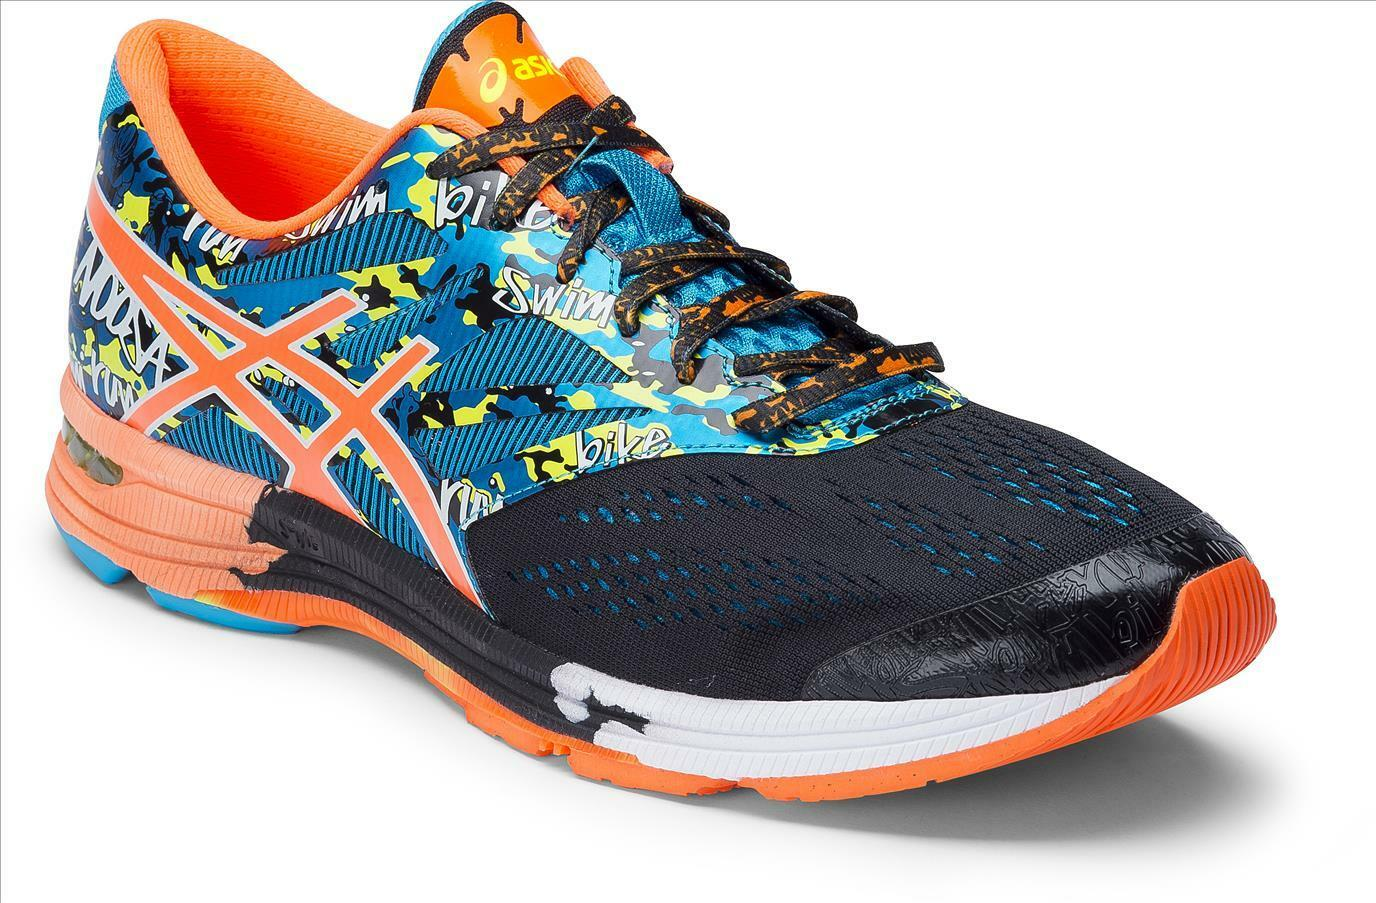 Asics Gel Noosa Tri 10 Mens Running shoes (D) (9030) + FREE AUS DELIVERY